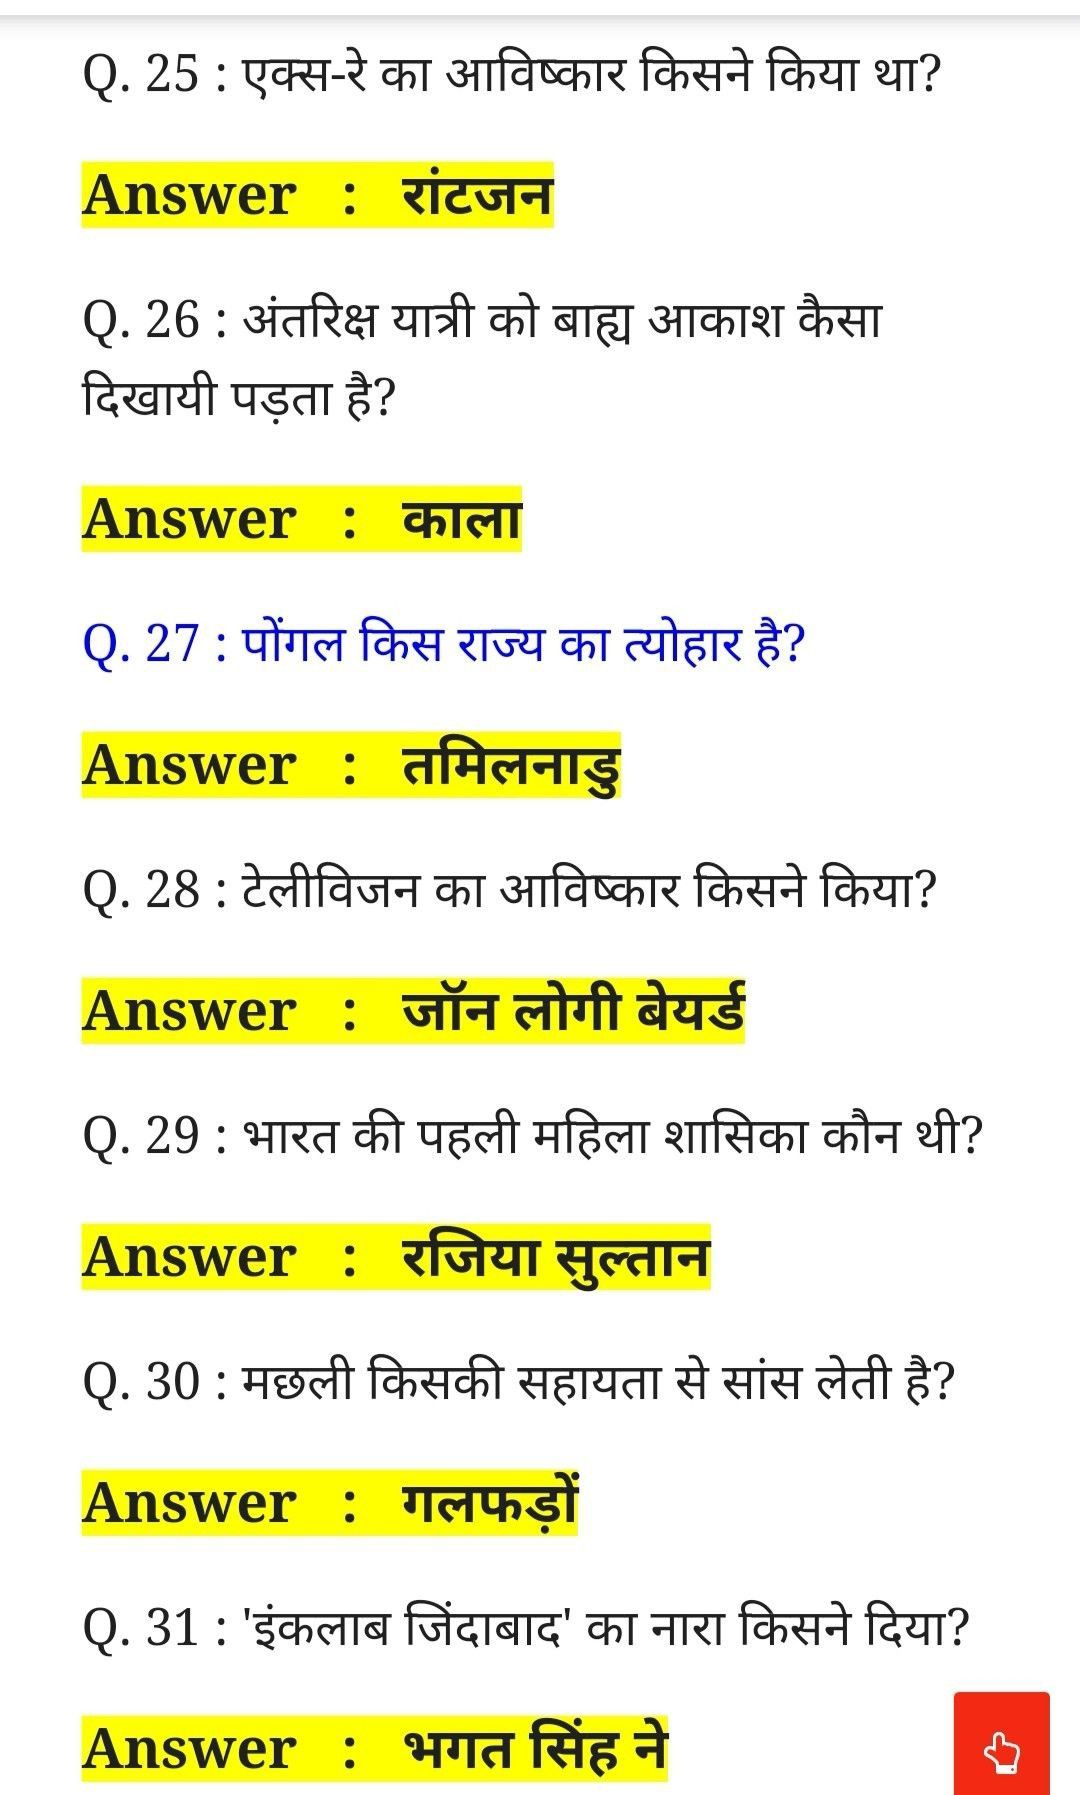 Pin by khushboo on general knowledge in 2020 | Gk ...